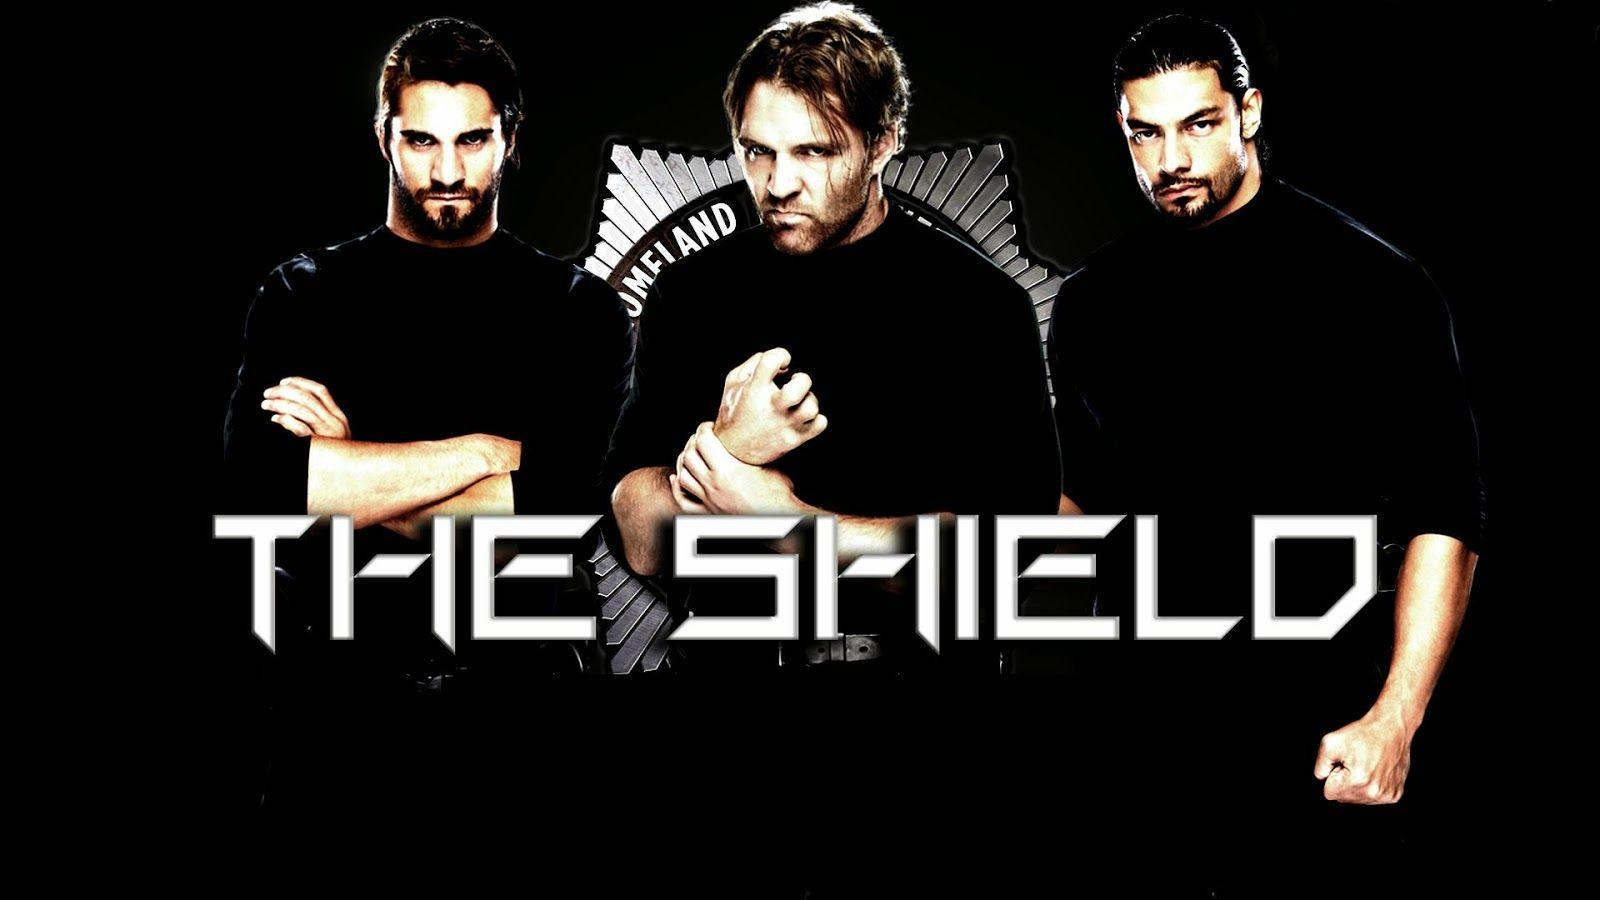 Wwe the shield wallpapers wallpaper cave - Download pictures of the shield wwe ...